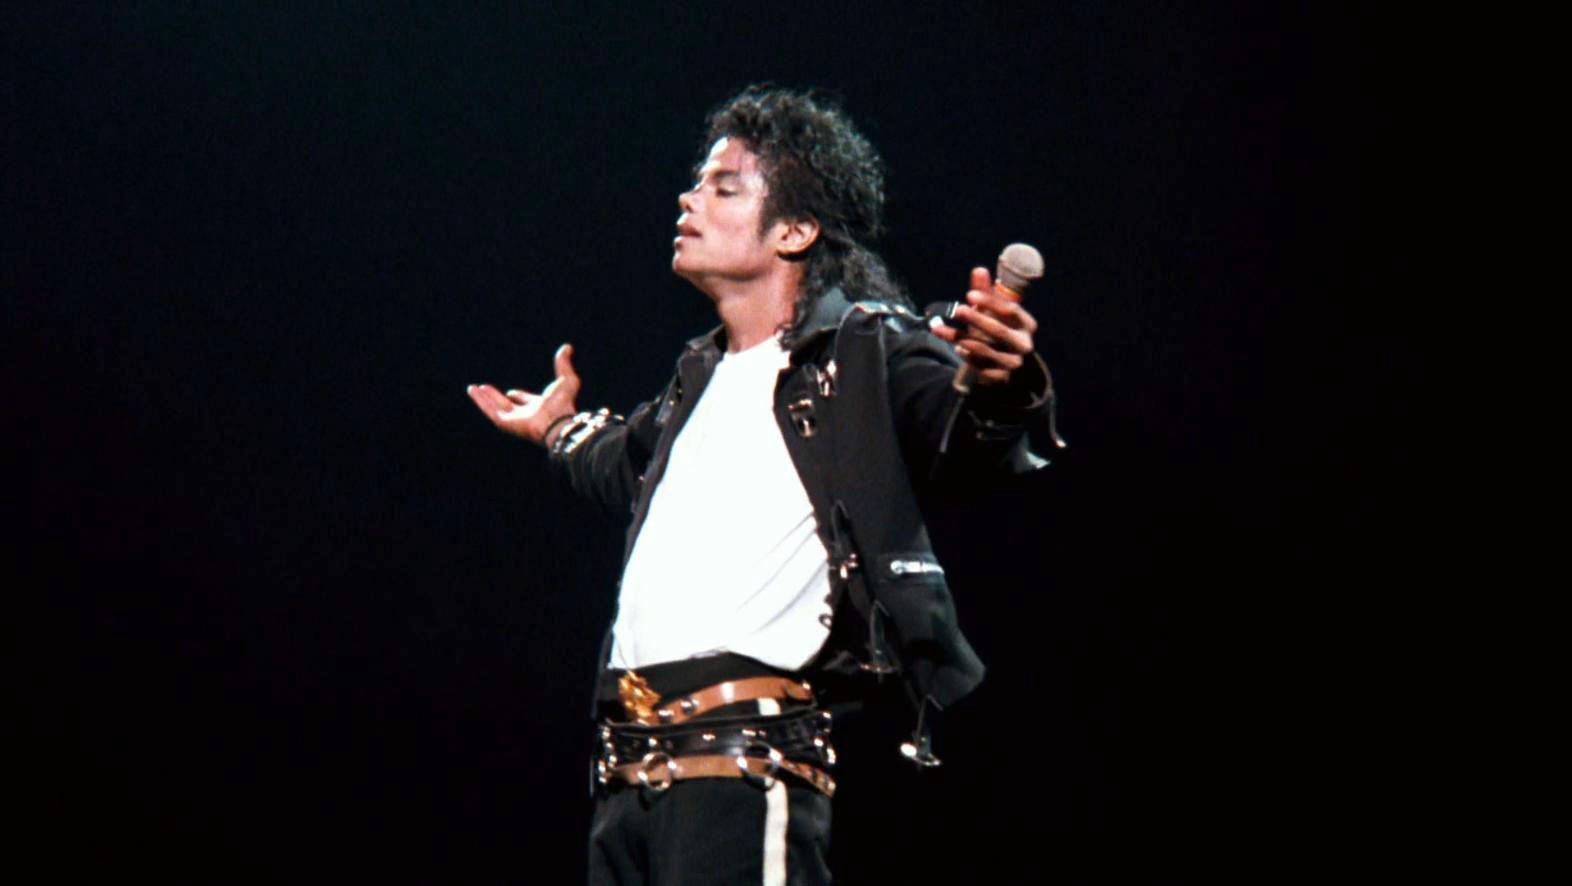 mj s songs inspire social change michael jackson world network man in the mirror